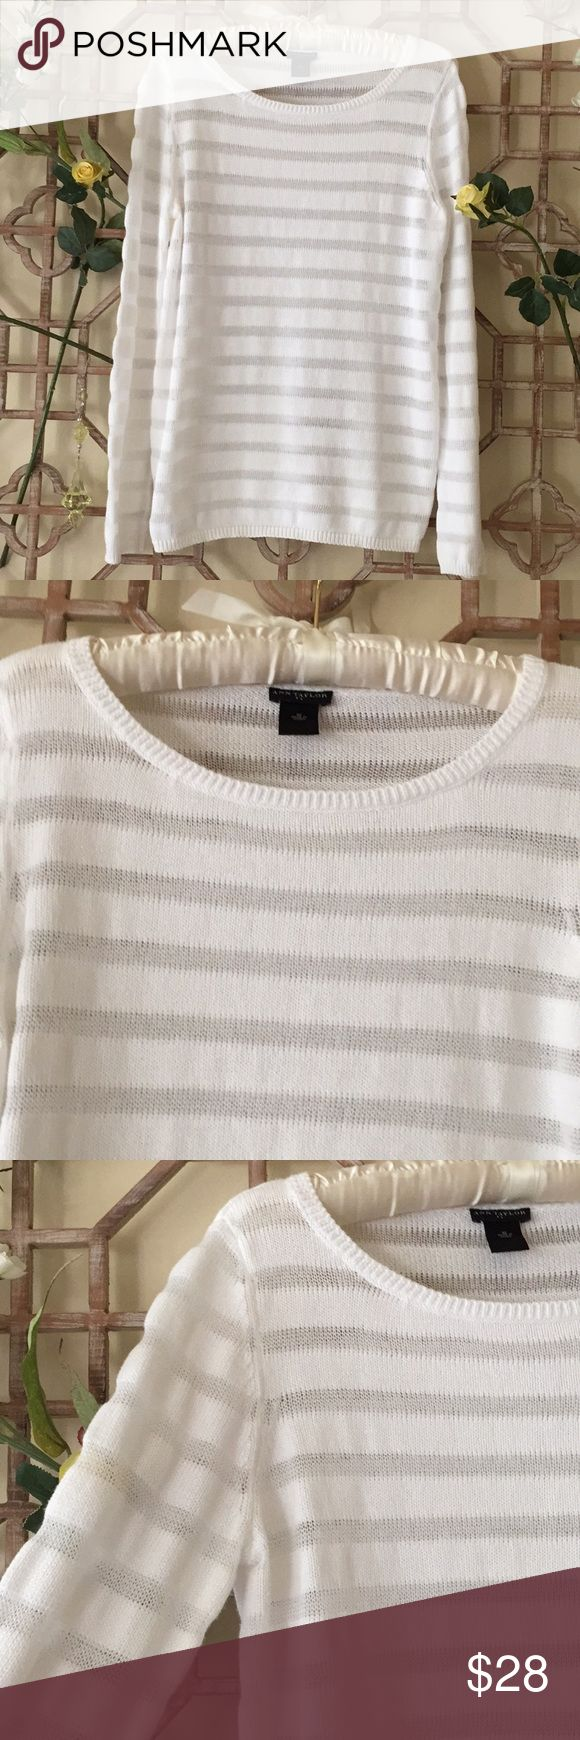 "Ann Taylor white full sleeve cotton sweater This is a white full sleeve sweater with scoop neck. In excellent condition. Length is 26"" bust is 19"" Ann Taylor Sweaters Crew & Scoop Necks"